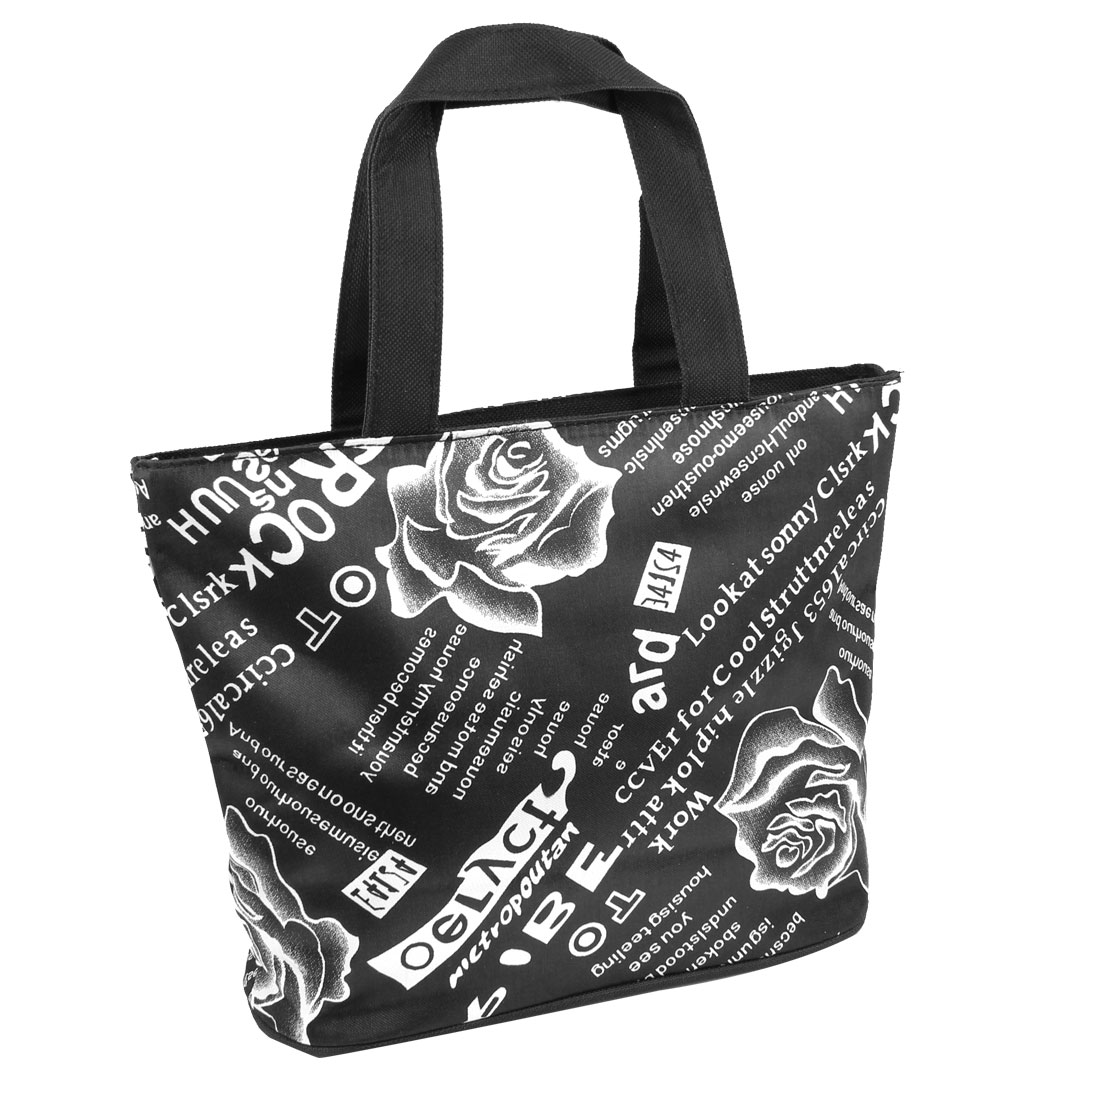 Household Portable Zippered White Floral Print Polyester Shopping Tote Bag Black